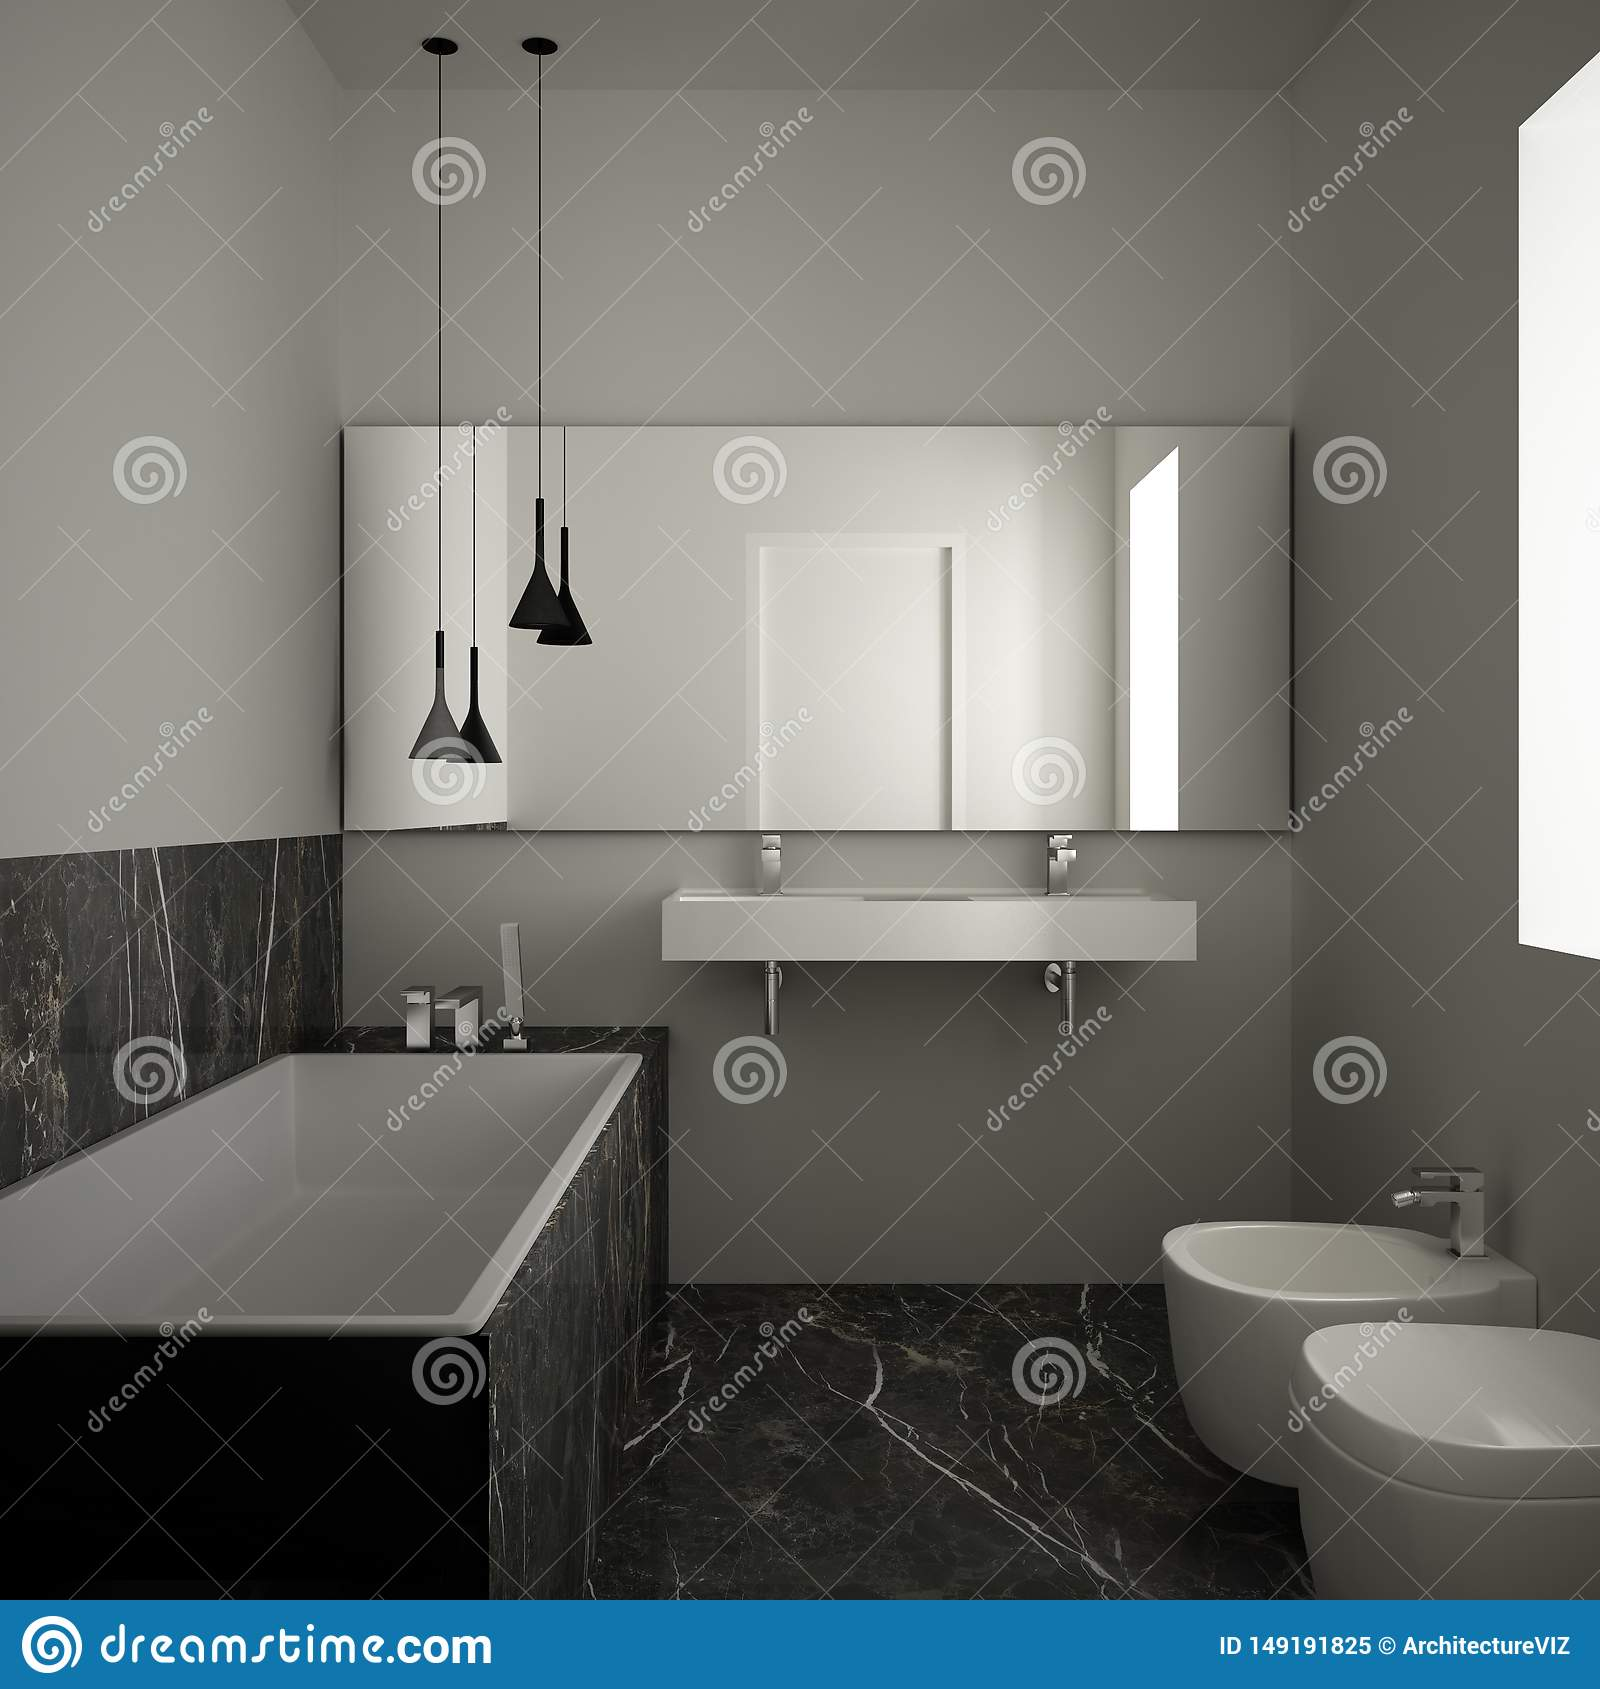 Modern Minimalist Bathroom With Dark Marble Floor And Tiles White Bathtub And Double Sink Contemporary Architecture Interior Stock Illustration Illustration Of Peaceful Simple 149191825